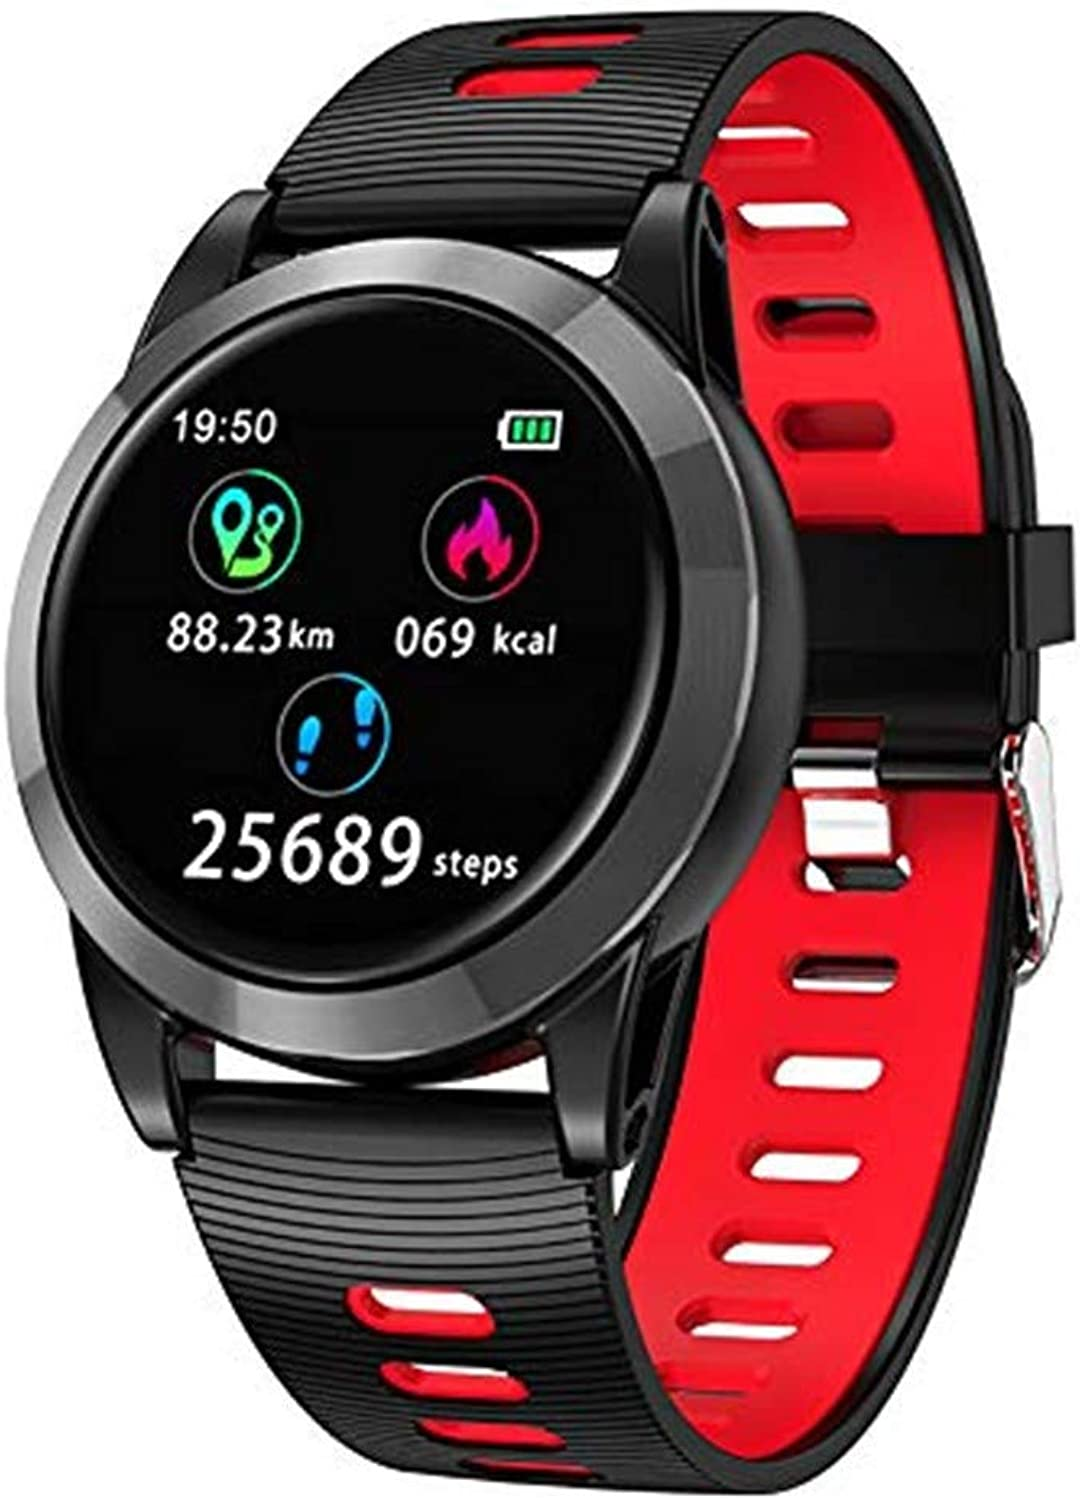 Smart Watches, Fitness Monitors, Heart Rate Monitors and Blood Pressure Monitors for Men and Women Outdoors, Smart Sports Watches for Android and iOS